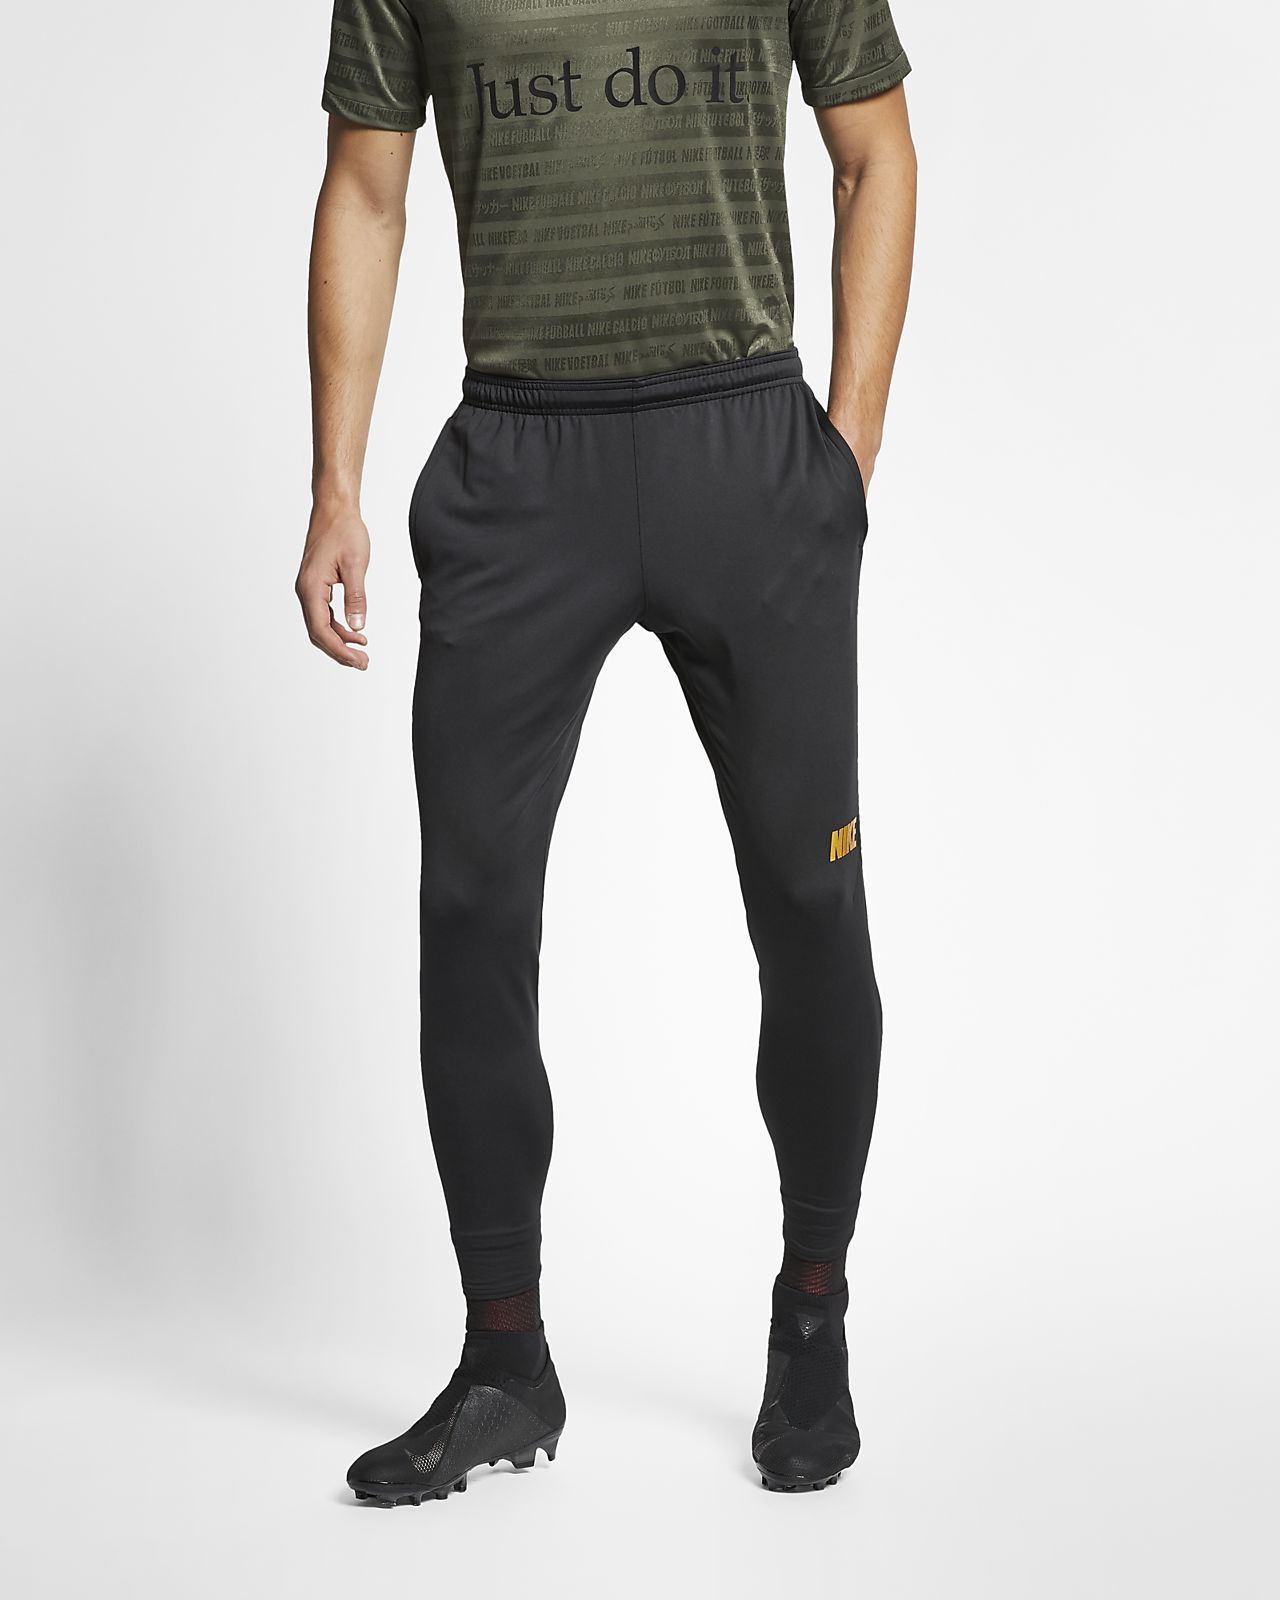 Pantalon de football Nike Dri-FIT Squad pour Homme